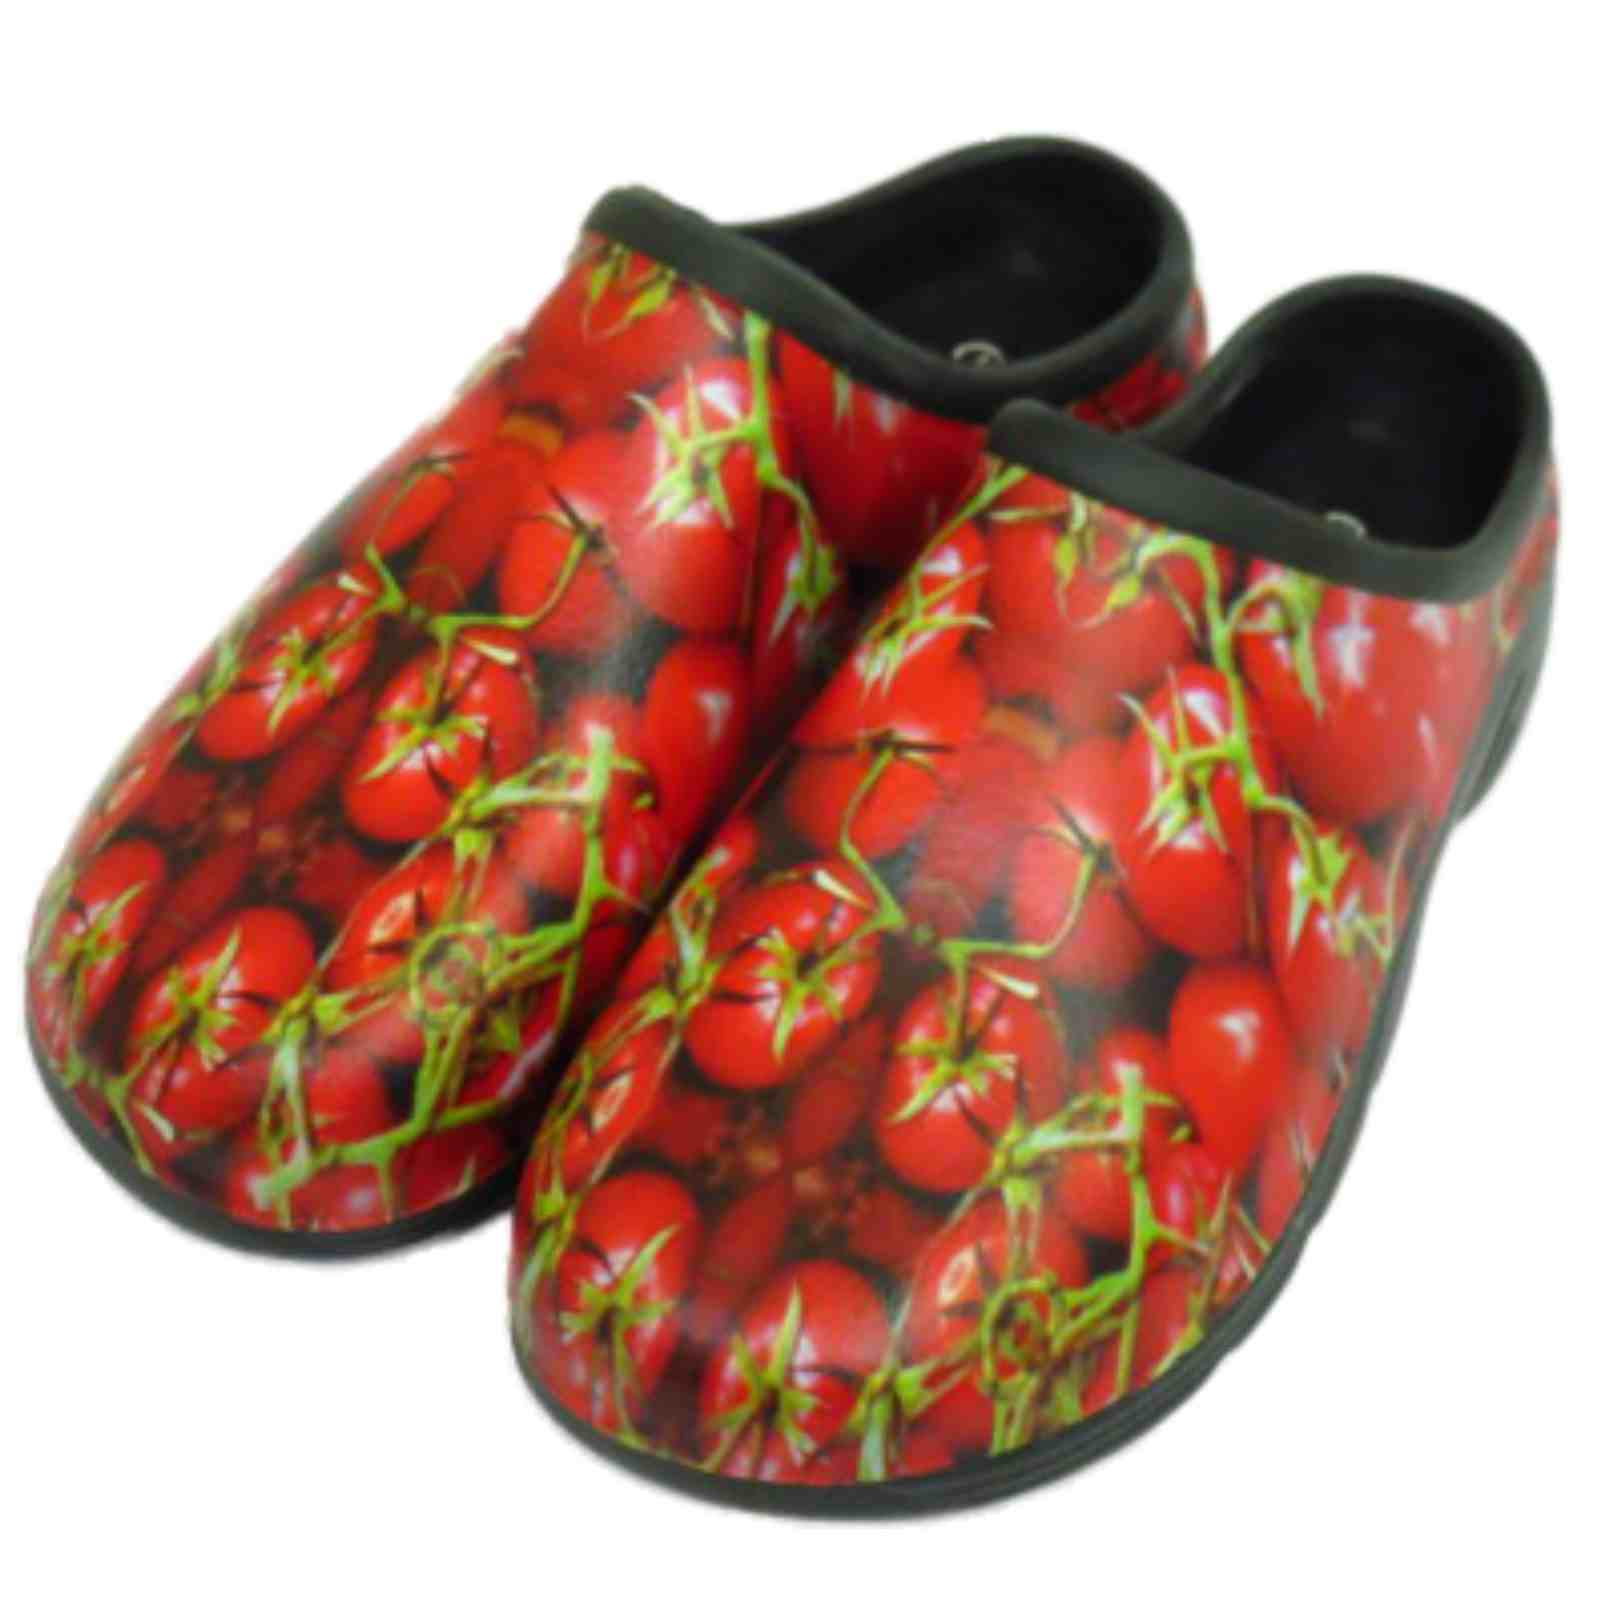 LADIES-GARDENING-CLOGS-LIGHTWEIGHT-SLIP-ON-OUTDOOR-GARDEN-MULES-SHOES-UK-4-8 thumbnail 7